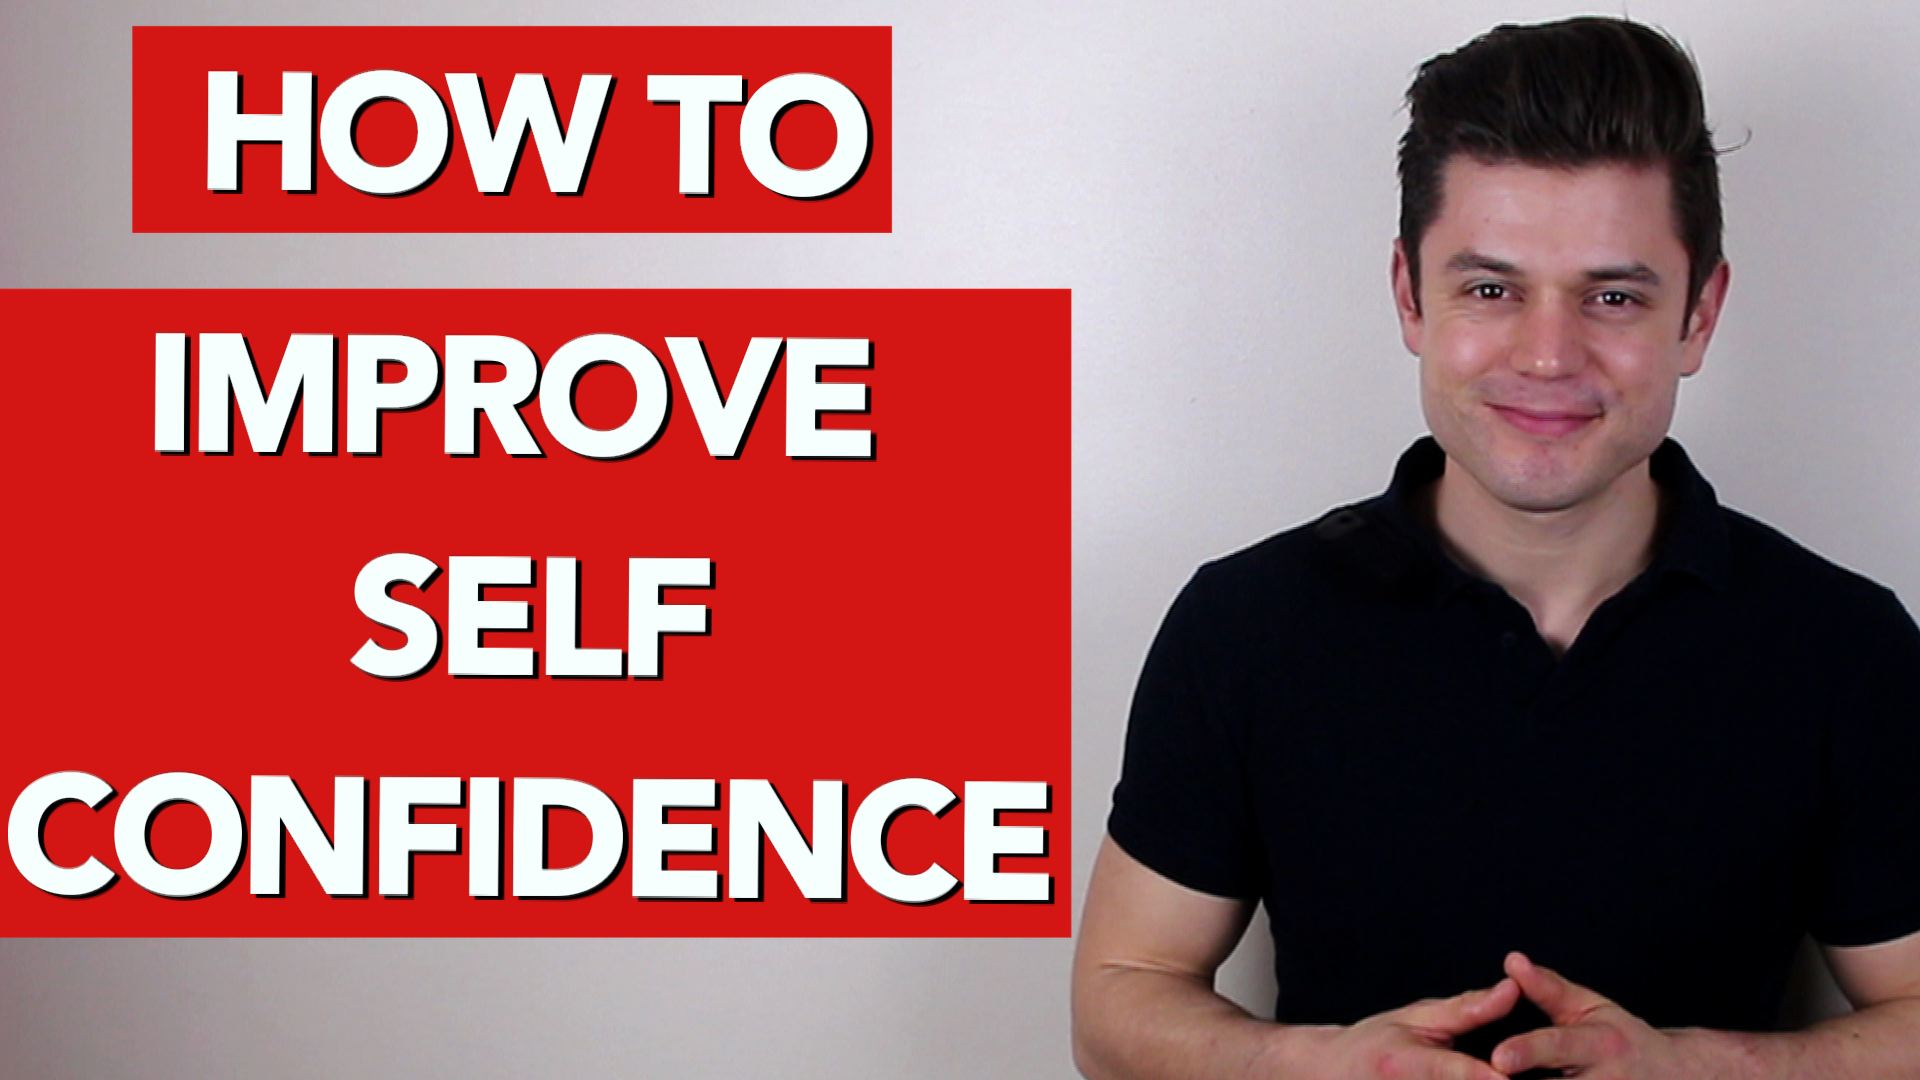 How to improve self confidence